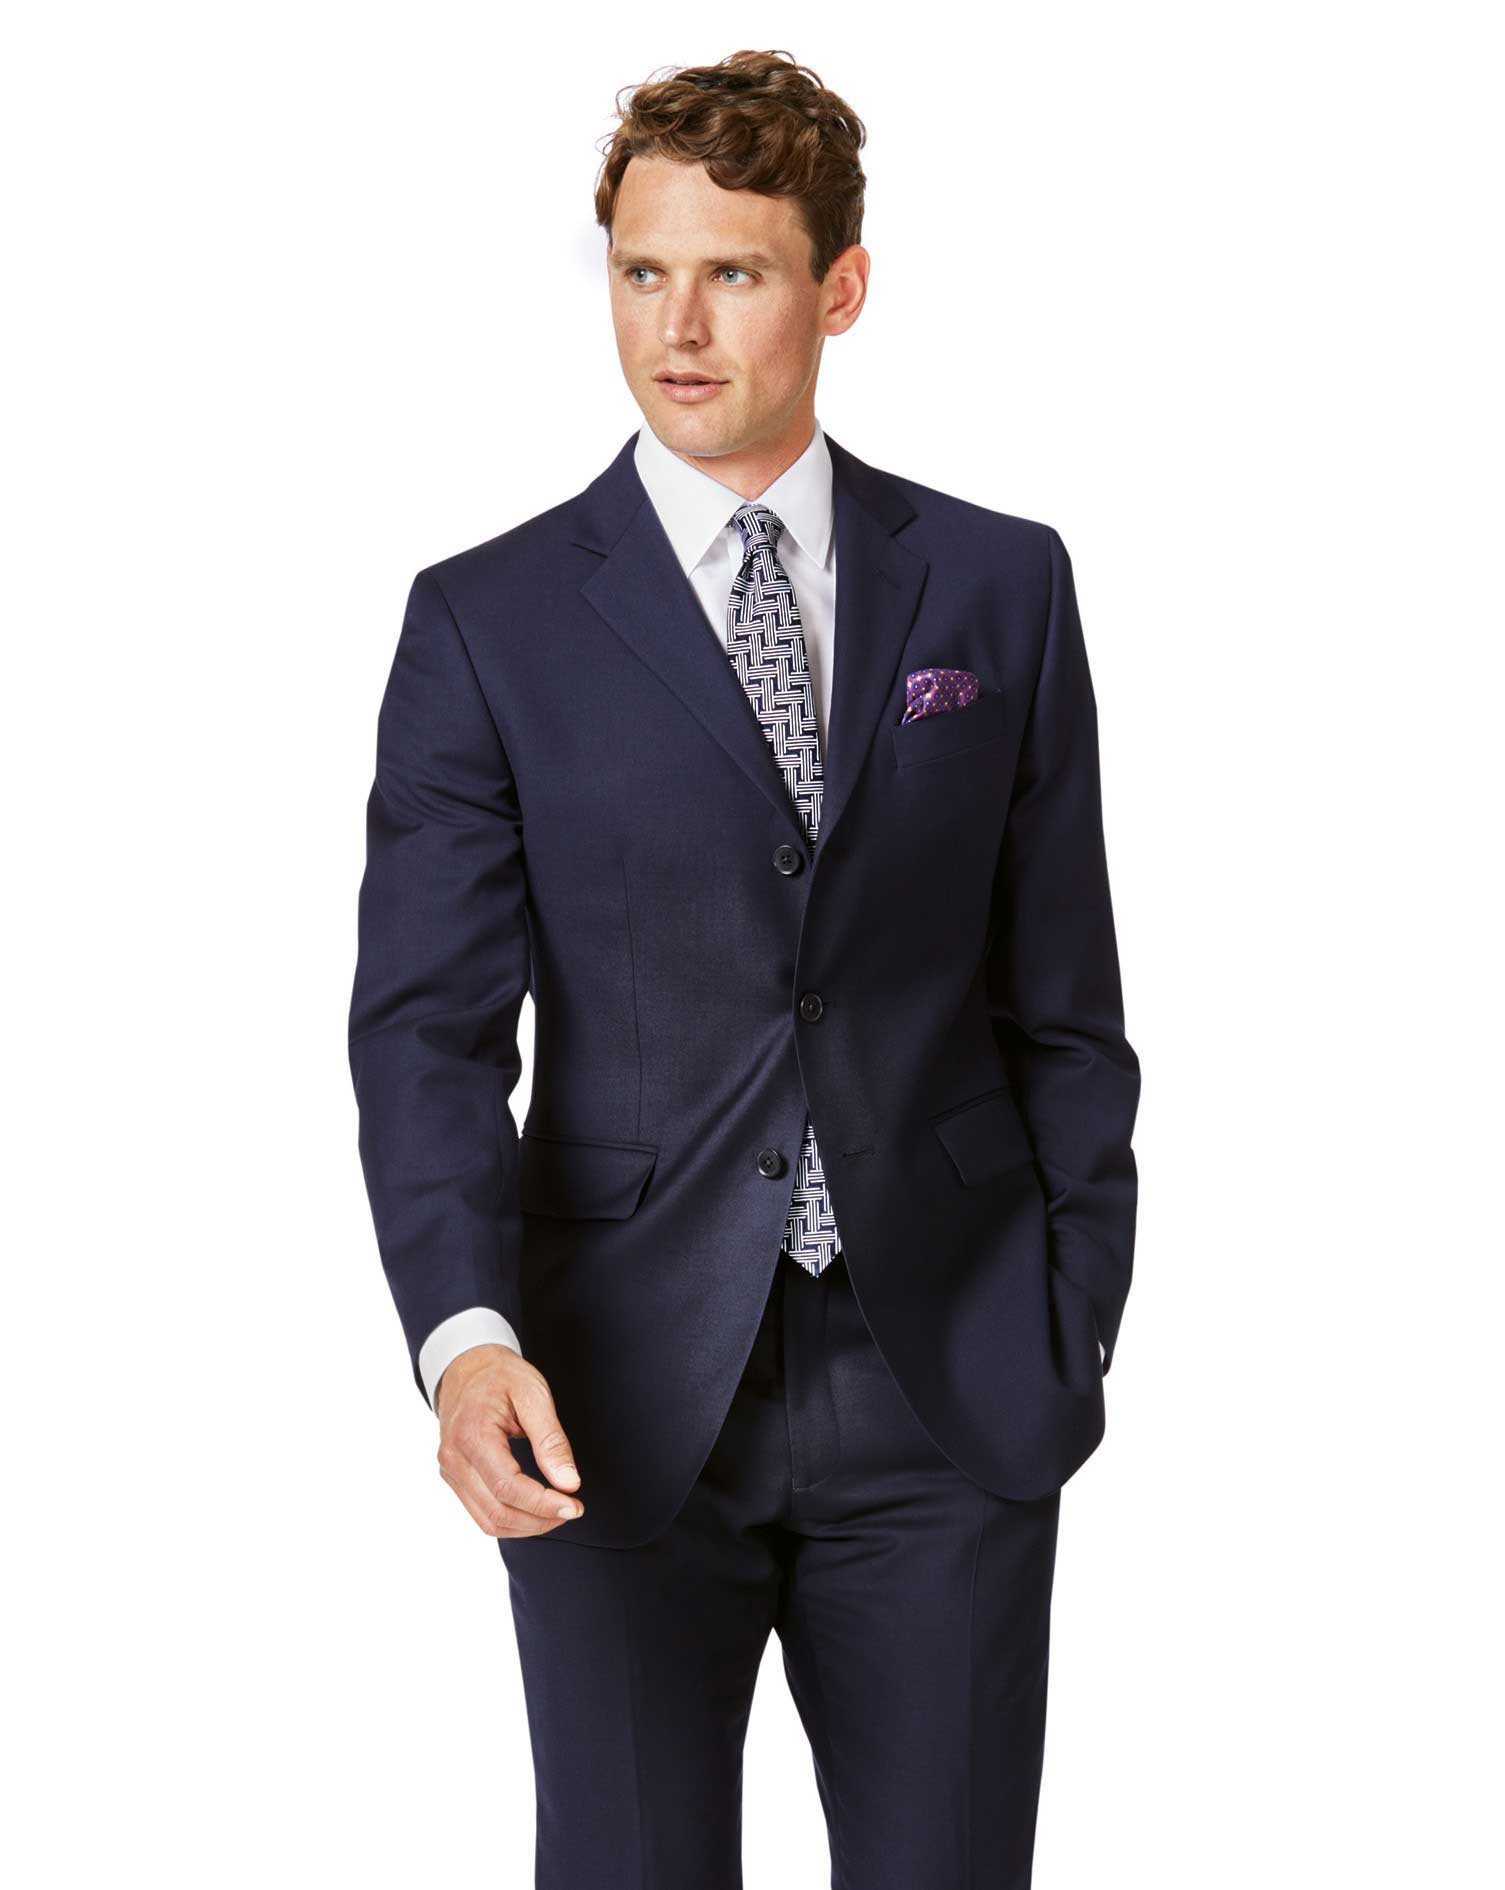 Navy Slim Fit Twill Single Breasted 3-Button Business Suit Wool Jacket Size 38 Long by Charles Tyrwh